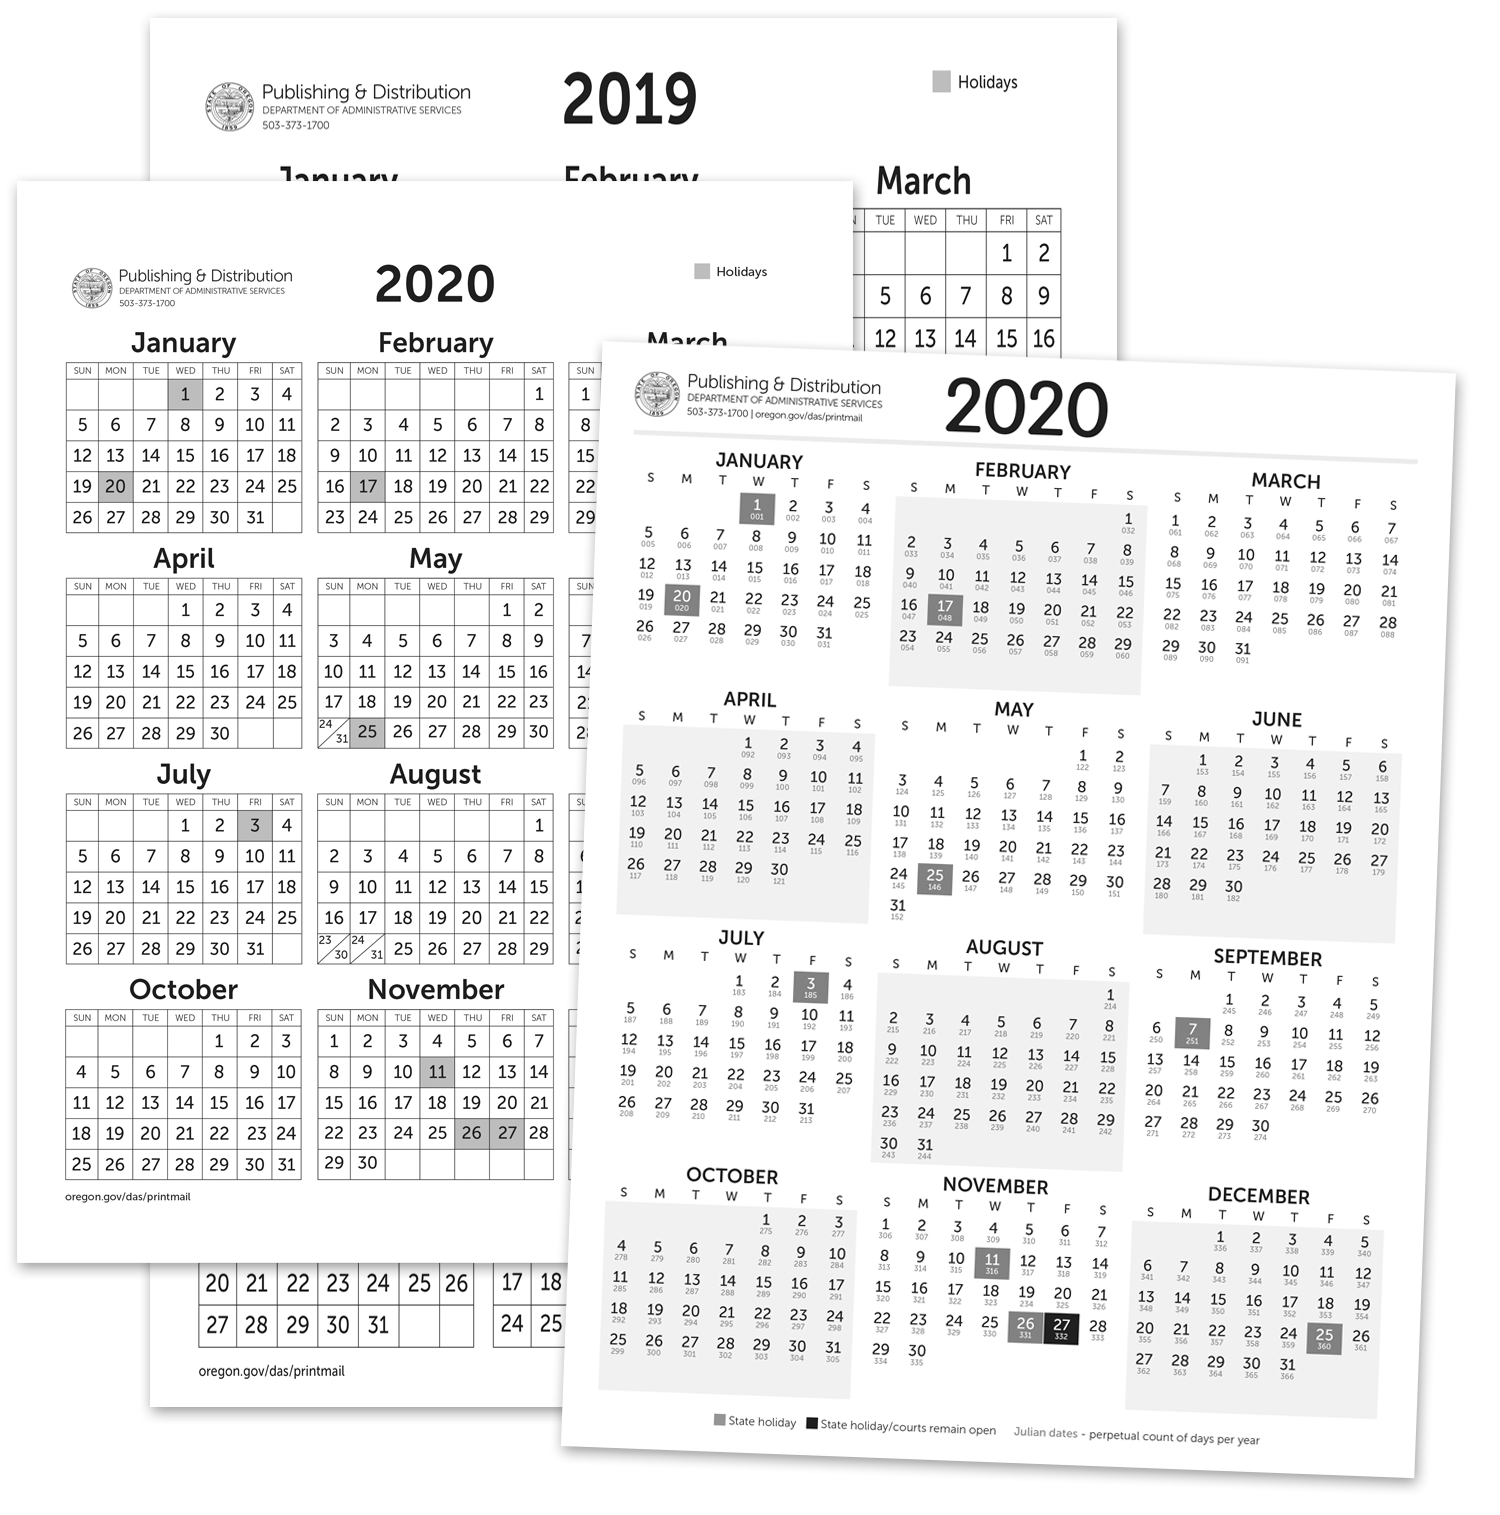 Bangla Calendar 2019 Pdf  Google Search in Uc Berkeley 2020-2020 Calendar